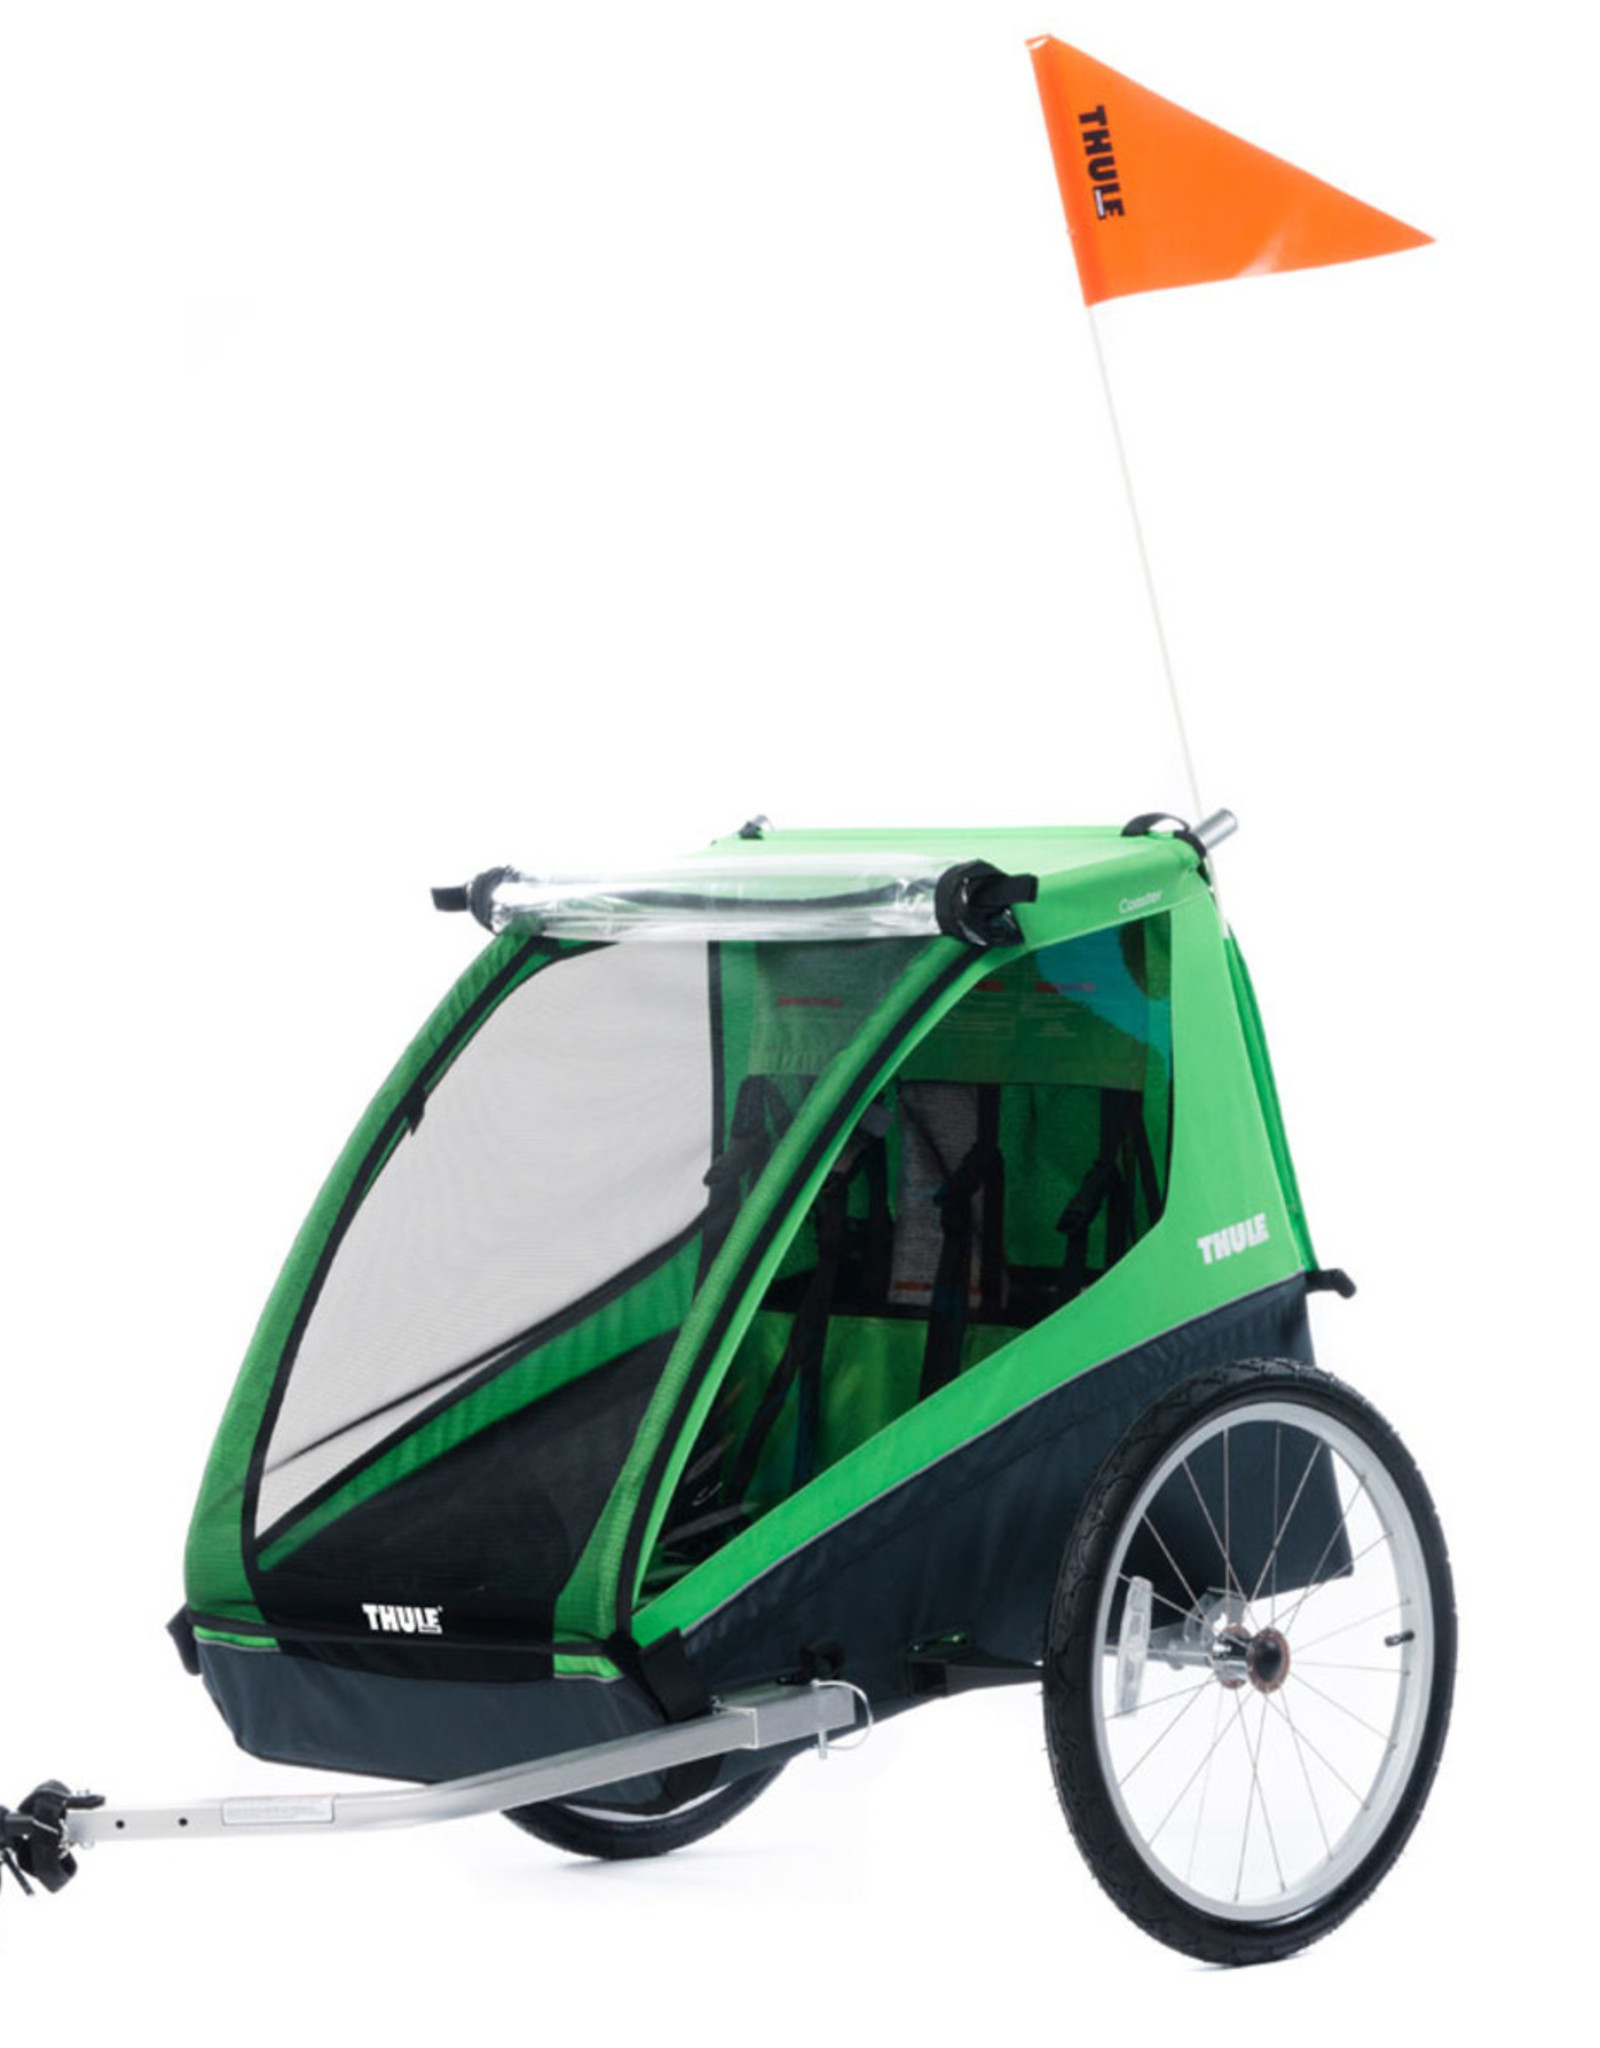 Thule Thule, Cadence2, Green w/ Cycling Kit, 2 Child